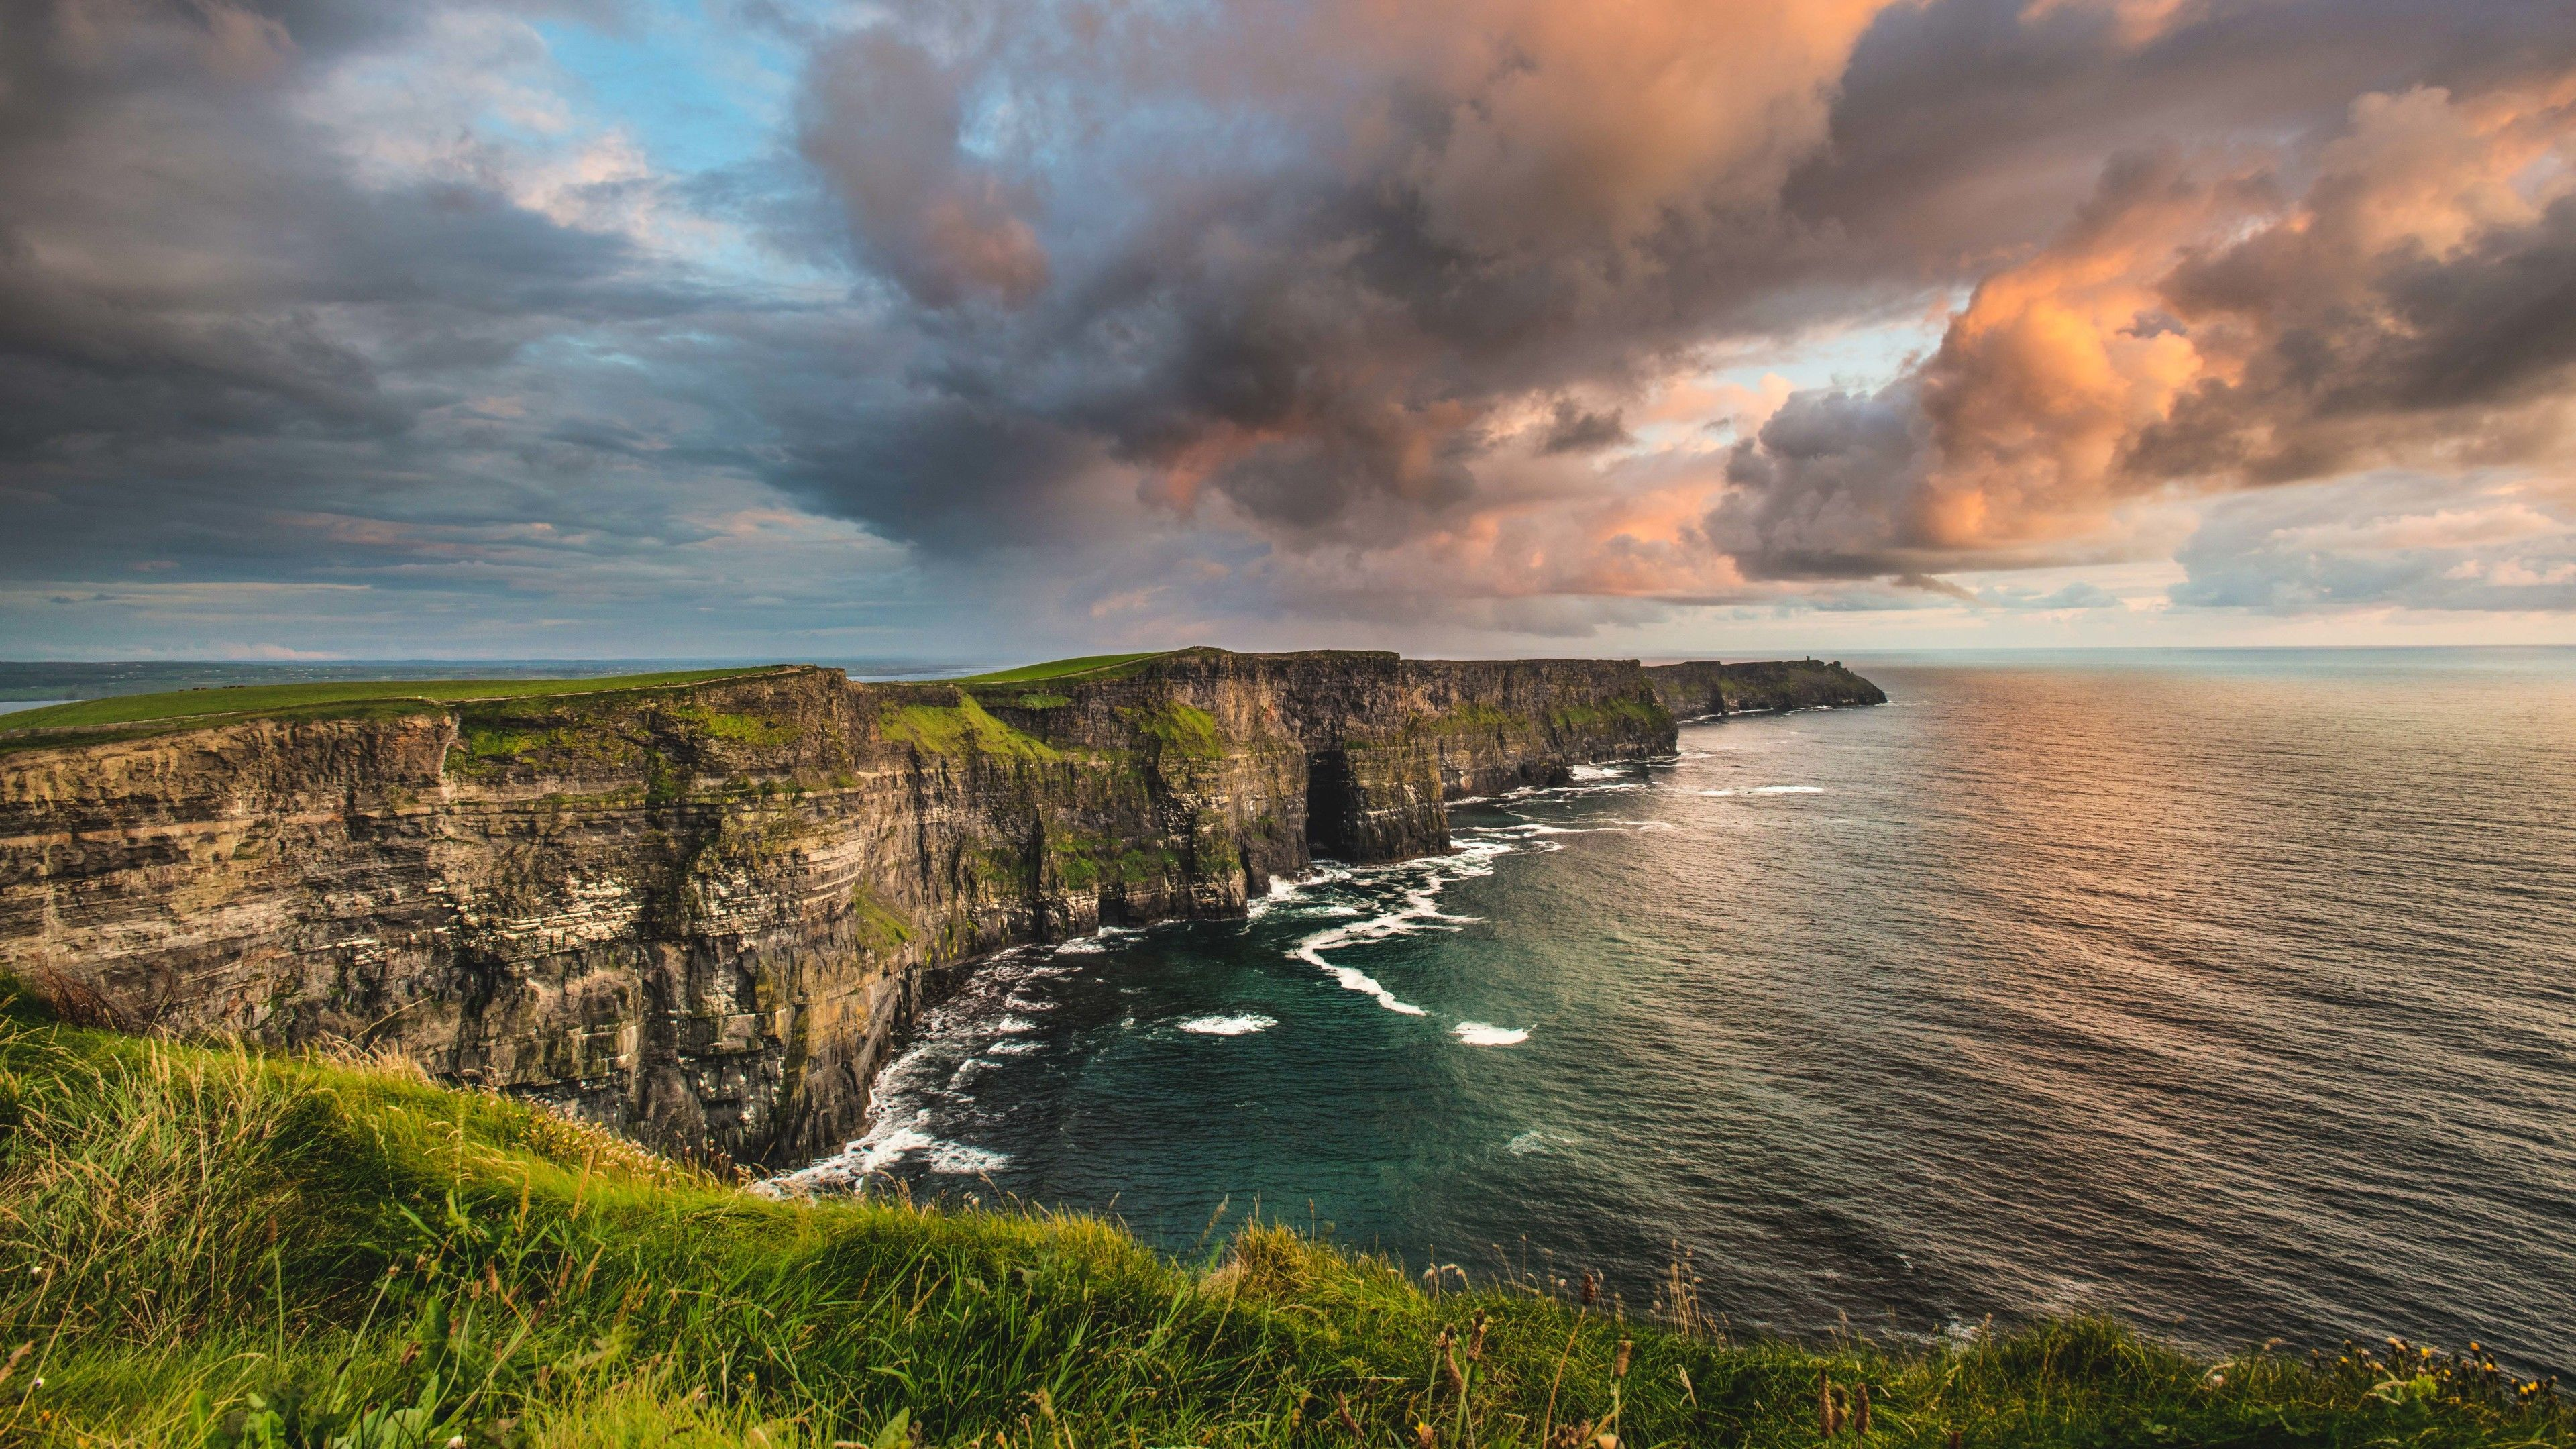 Cloudy sunset view of Cliffs of Moher.